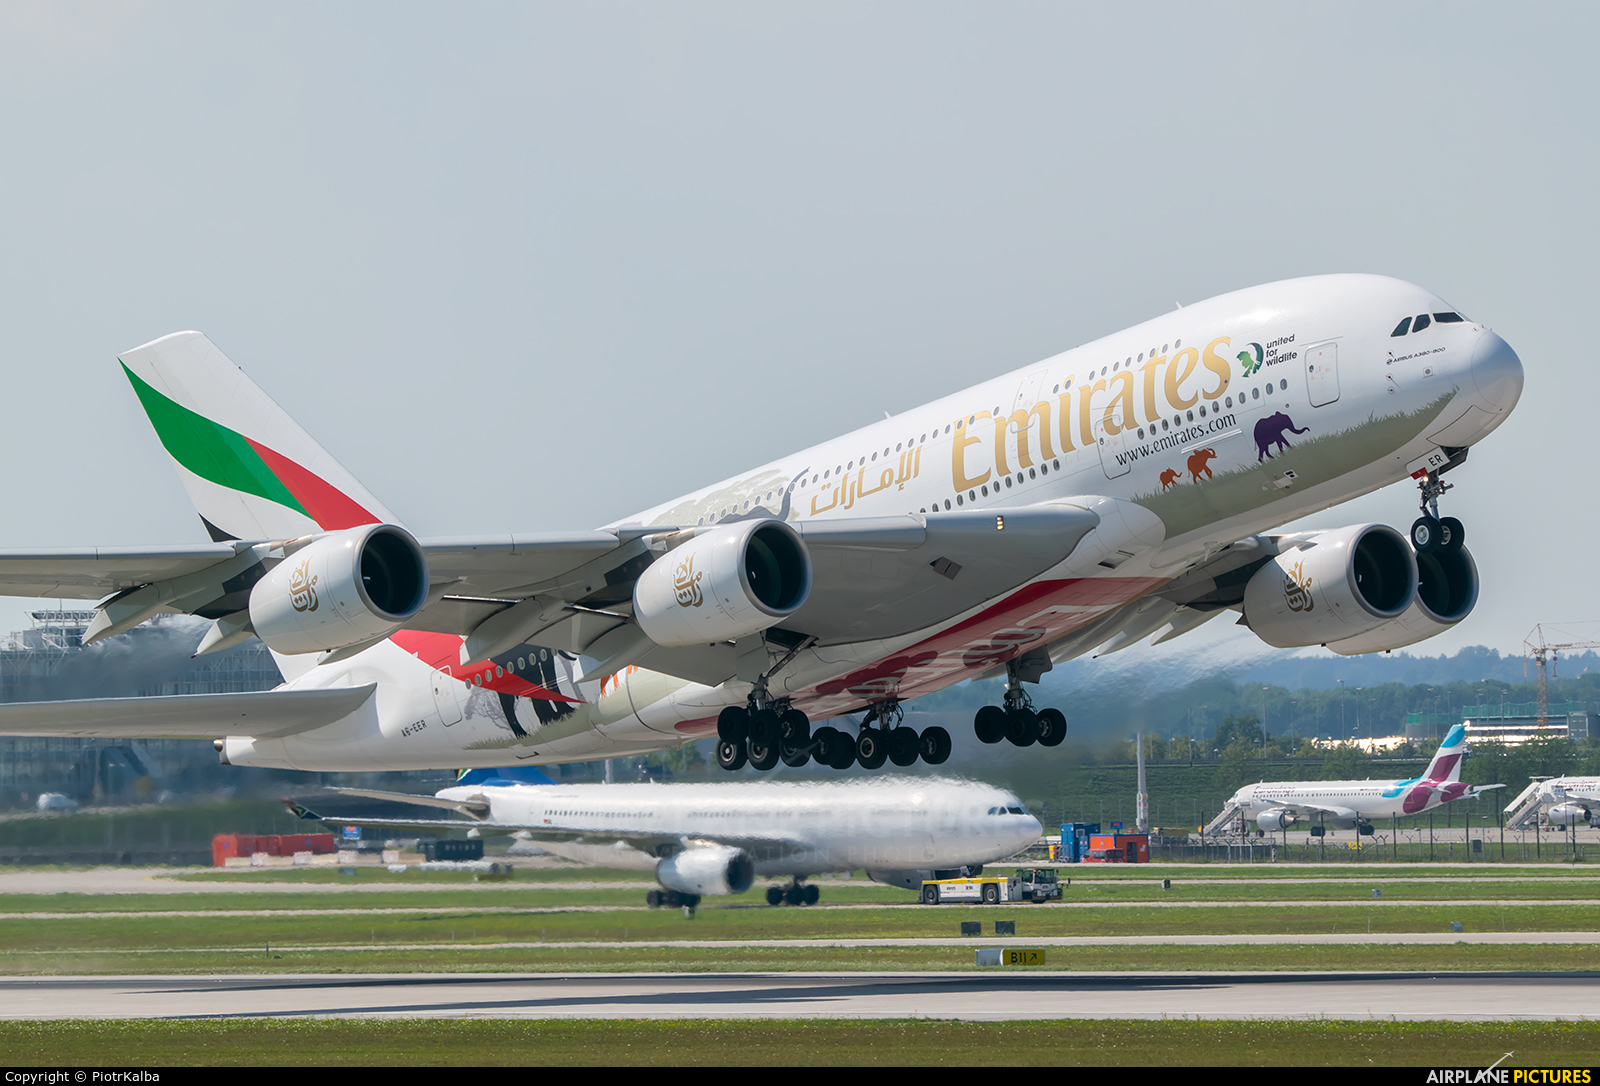 Emirates Airlines A6-EER aircraft at Munich